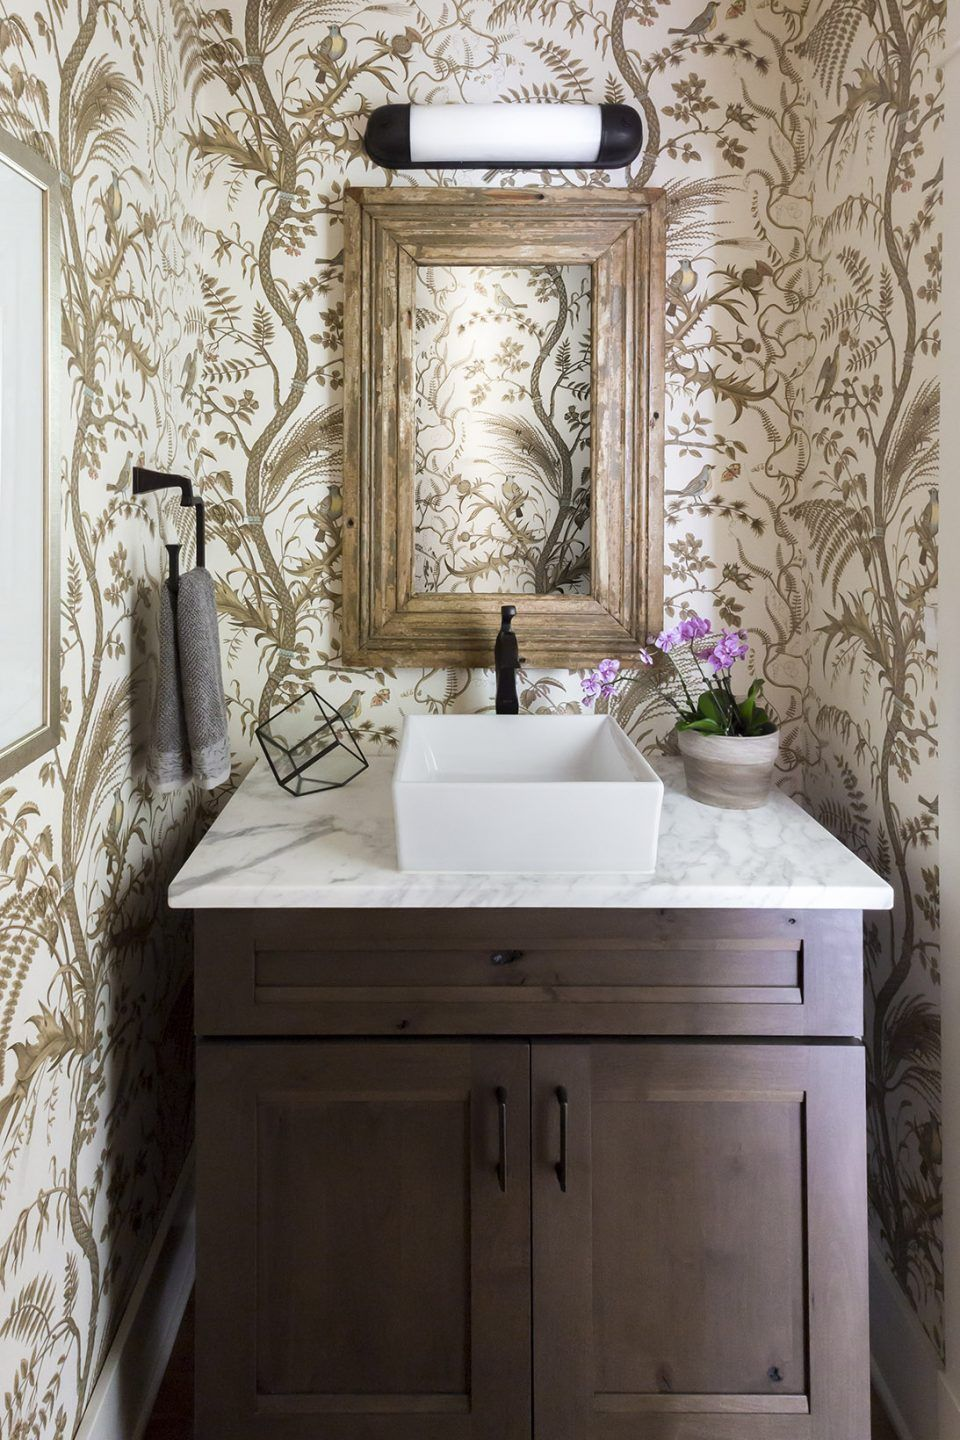 Pin On Wallpaper New country housepowder room